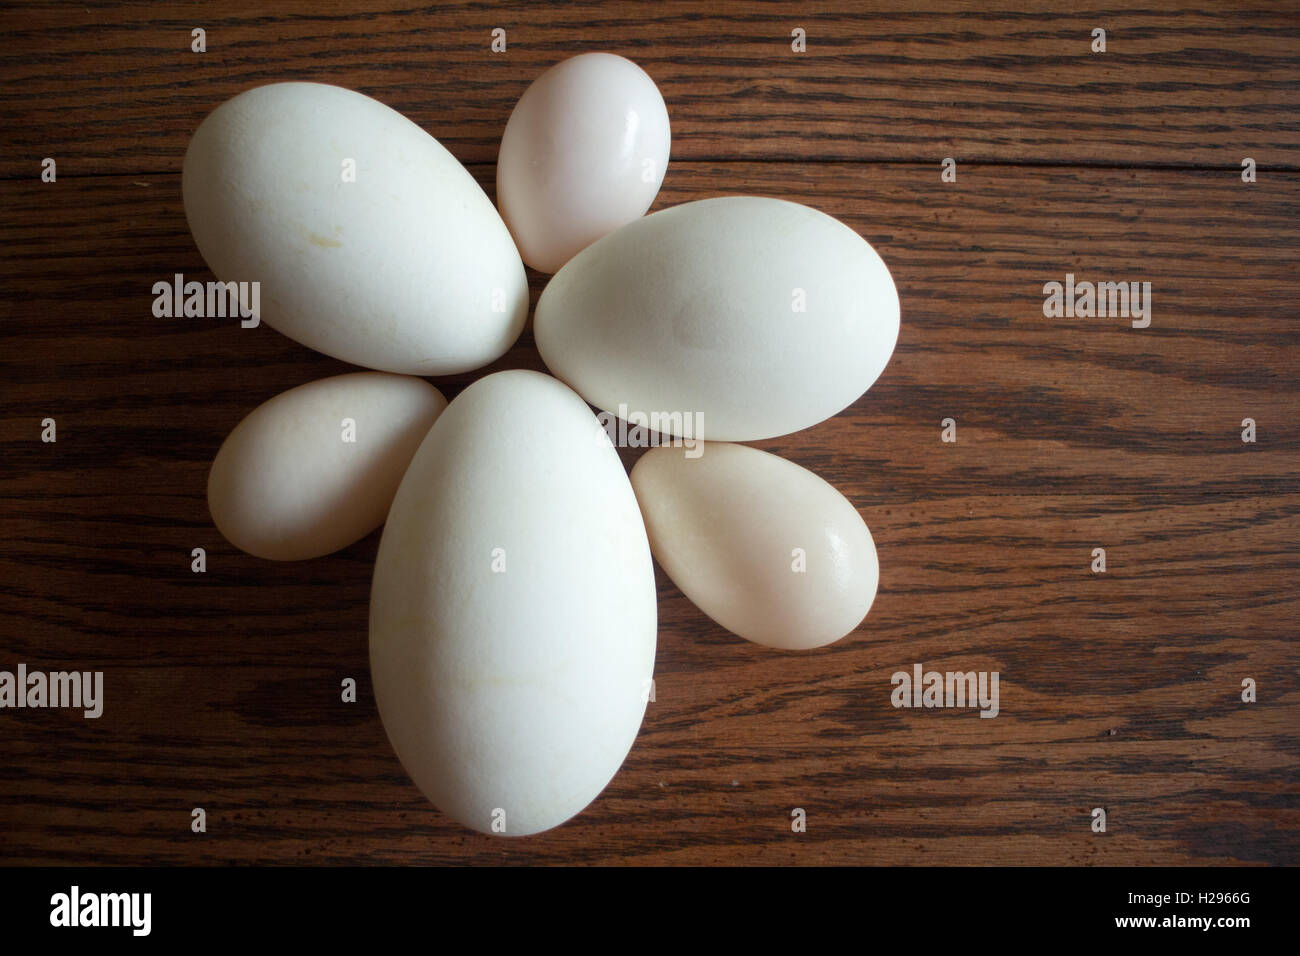 Duck, Goose and chicken eggs in multiple sizes - Stock Image